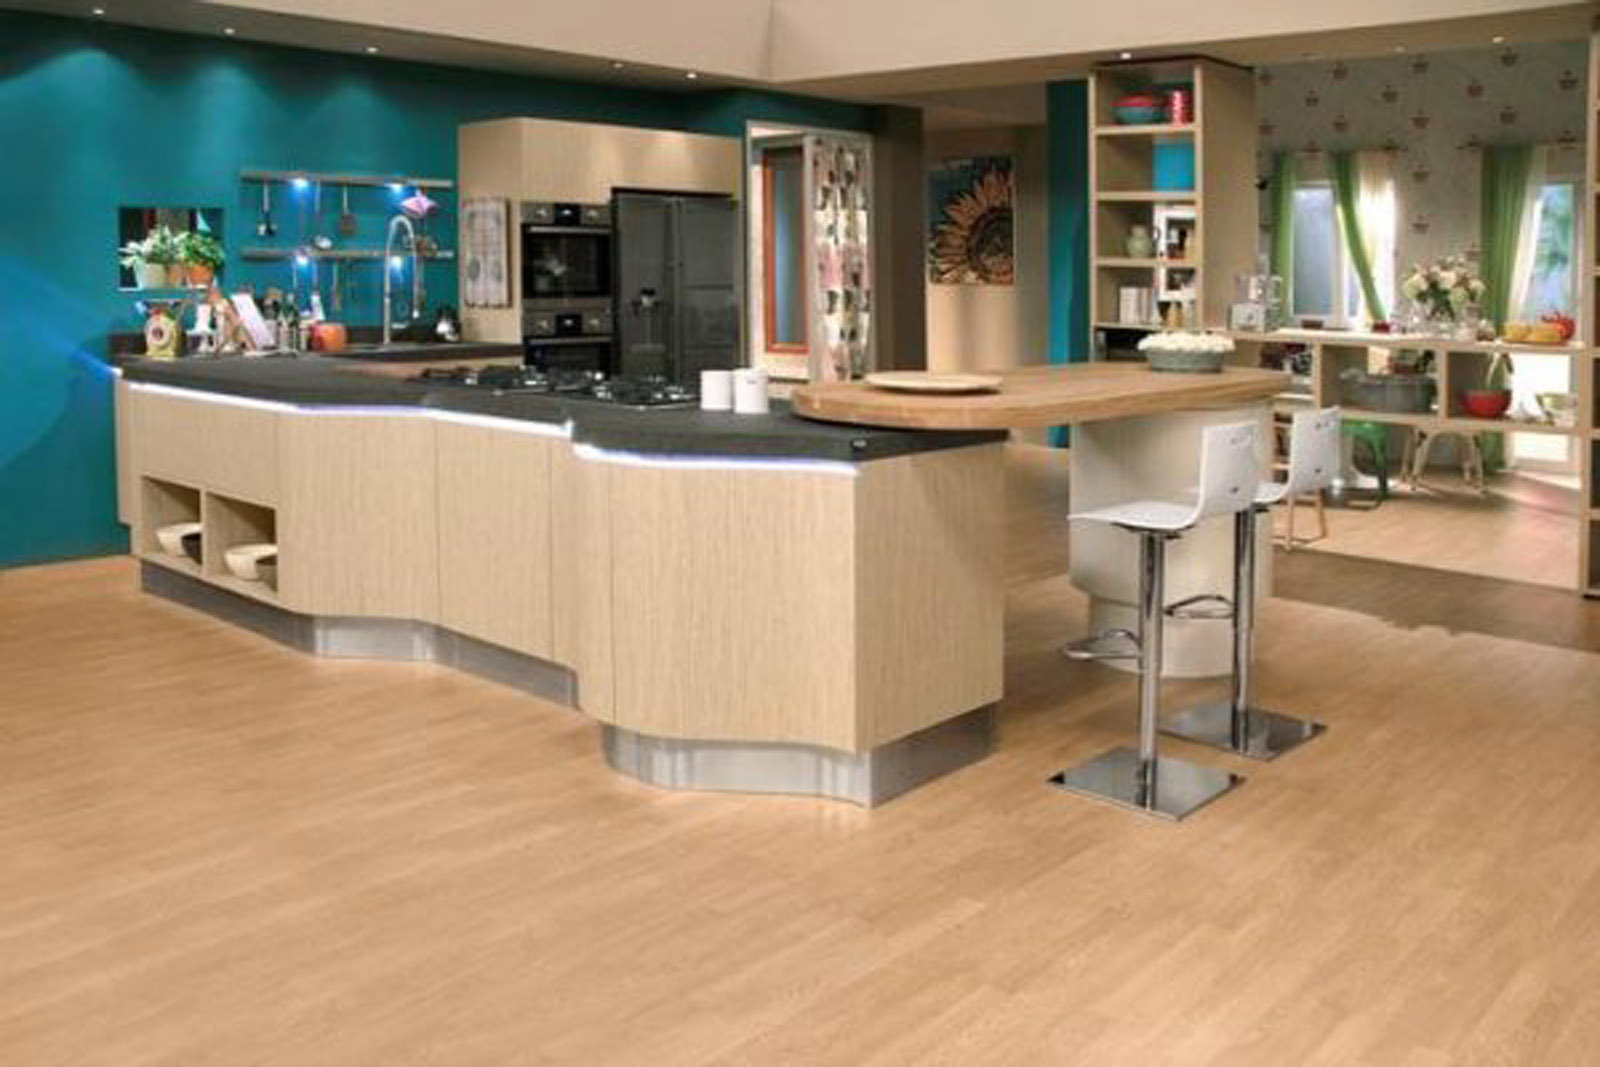 12 Le Cucine Pi&195&185 Belle Del Mondo Pictures To Pin On Pinterest #1B6D79 1600 1067 Classifica Delle Migliori Cucine